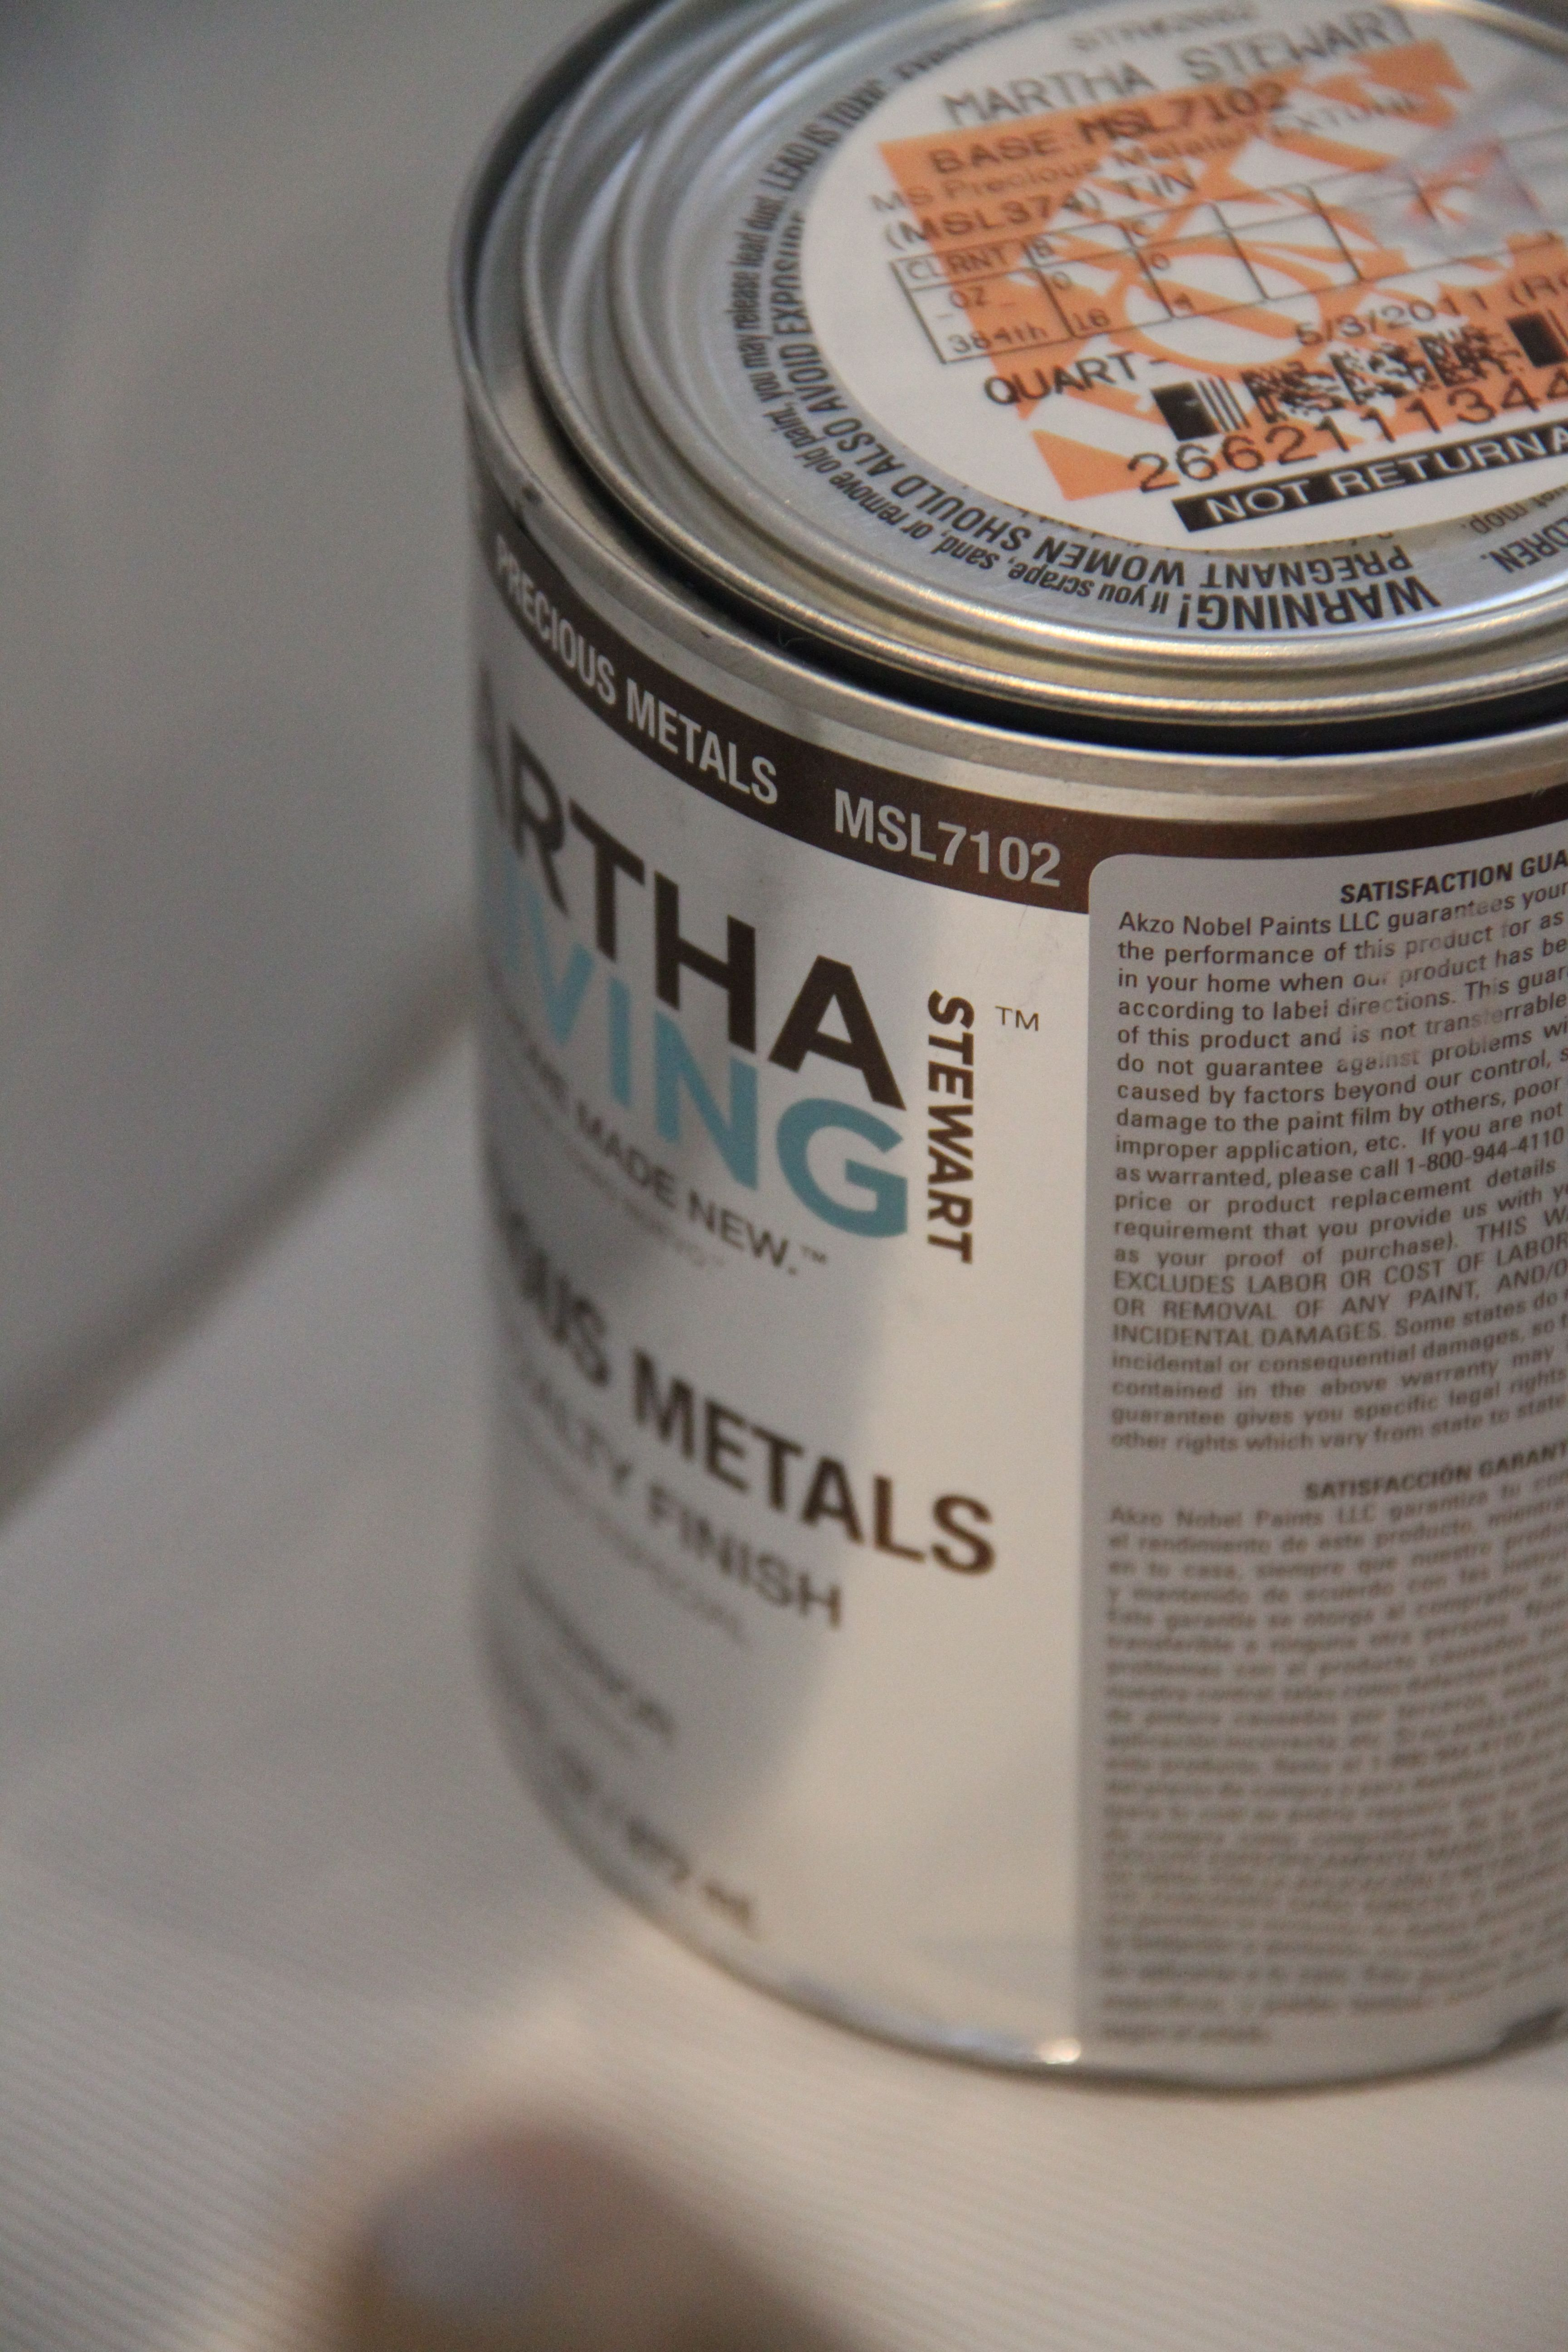 Originally I thought I could use the Benjamin Moore glaze in silver, but it was too, well, not right for this sort of application. I ended up with Martha's Precious Metals line in Polished Tin.